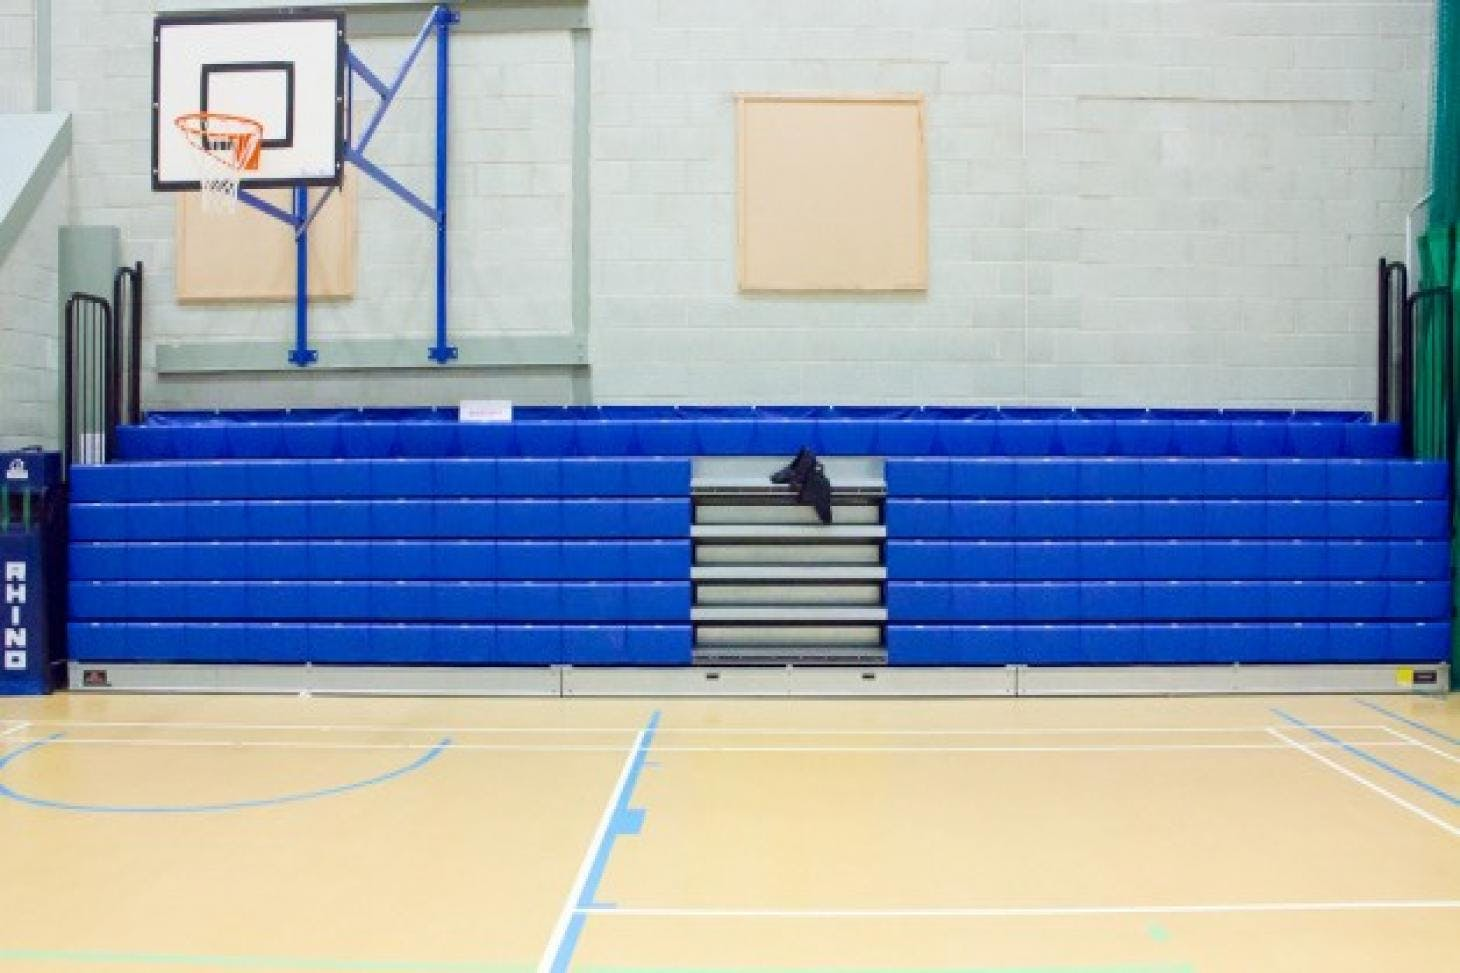 Luton Sixth Form College Indoor basketball court